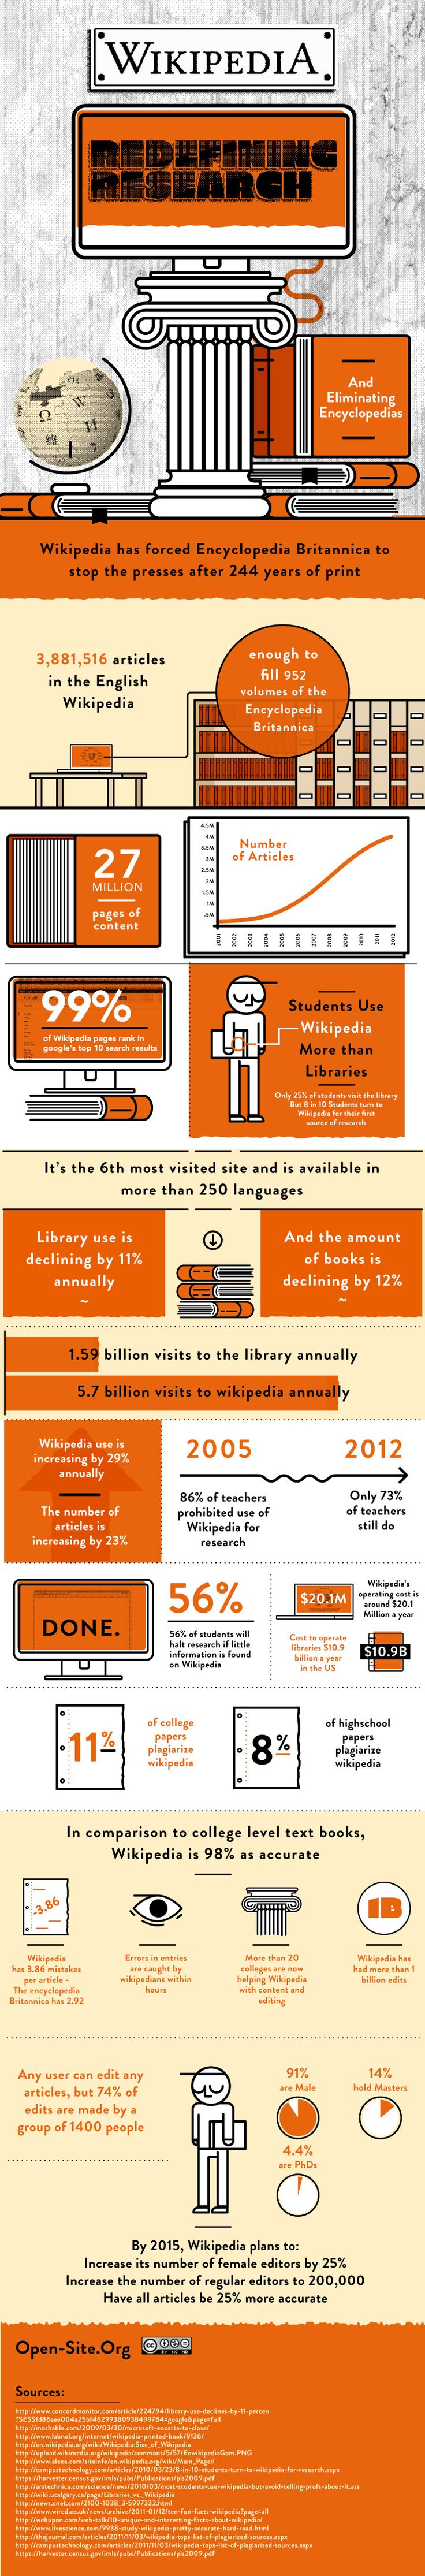 Wikipedia vs. libraries...I would prefer Libraries showing people how to USE Wikipedia most effectively.